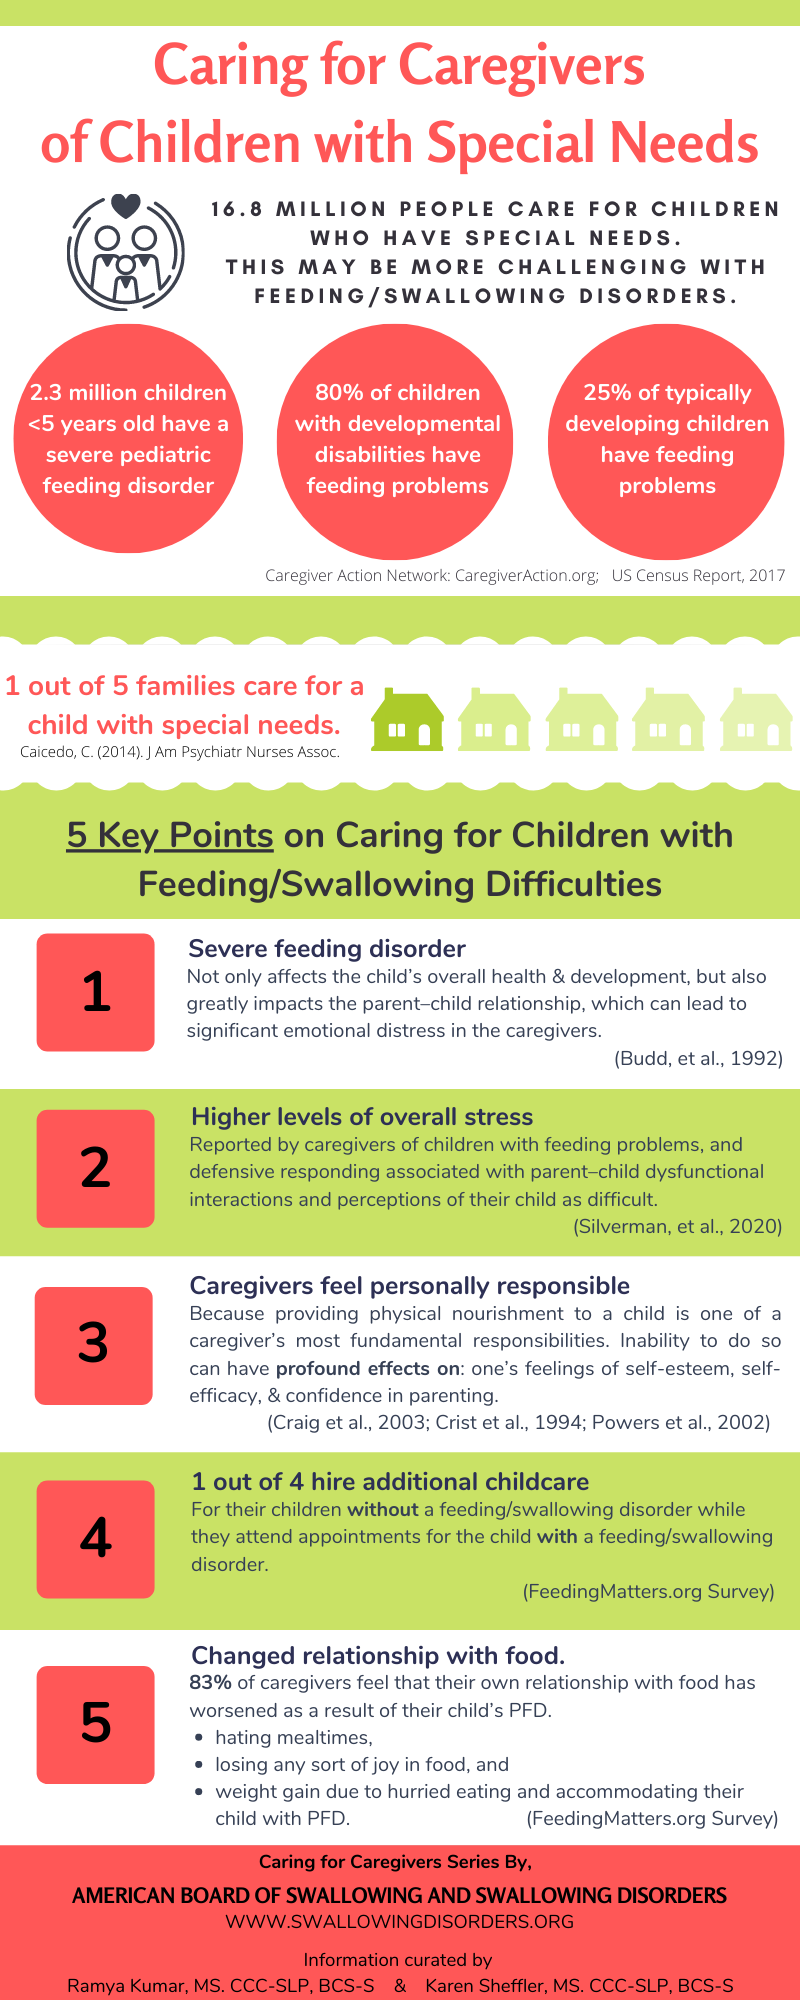 Caring for pediatrics with difficulty feeding and swallowing. Pediatric feeding and swallowing disorders increase caregiver burden for the caregivers.